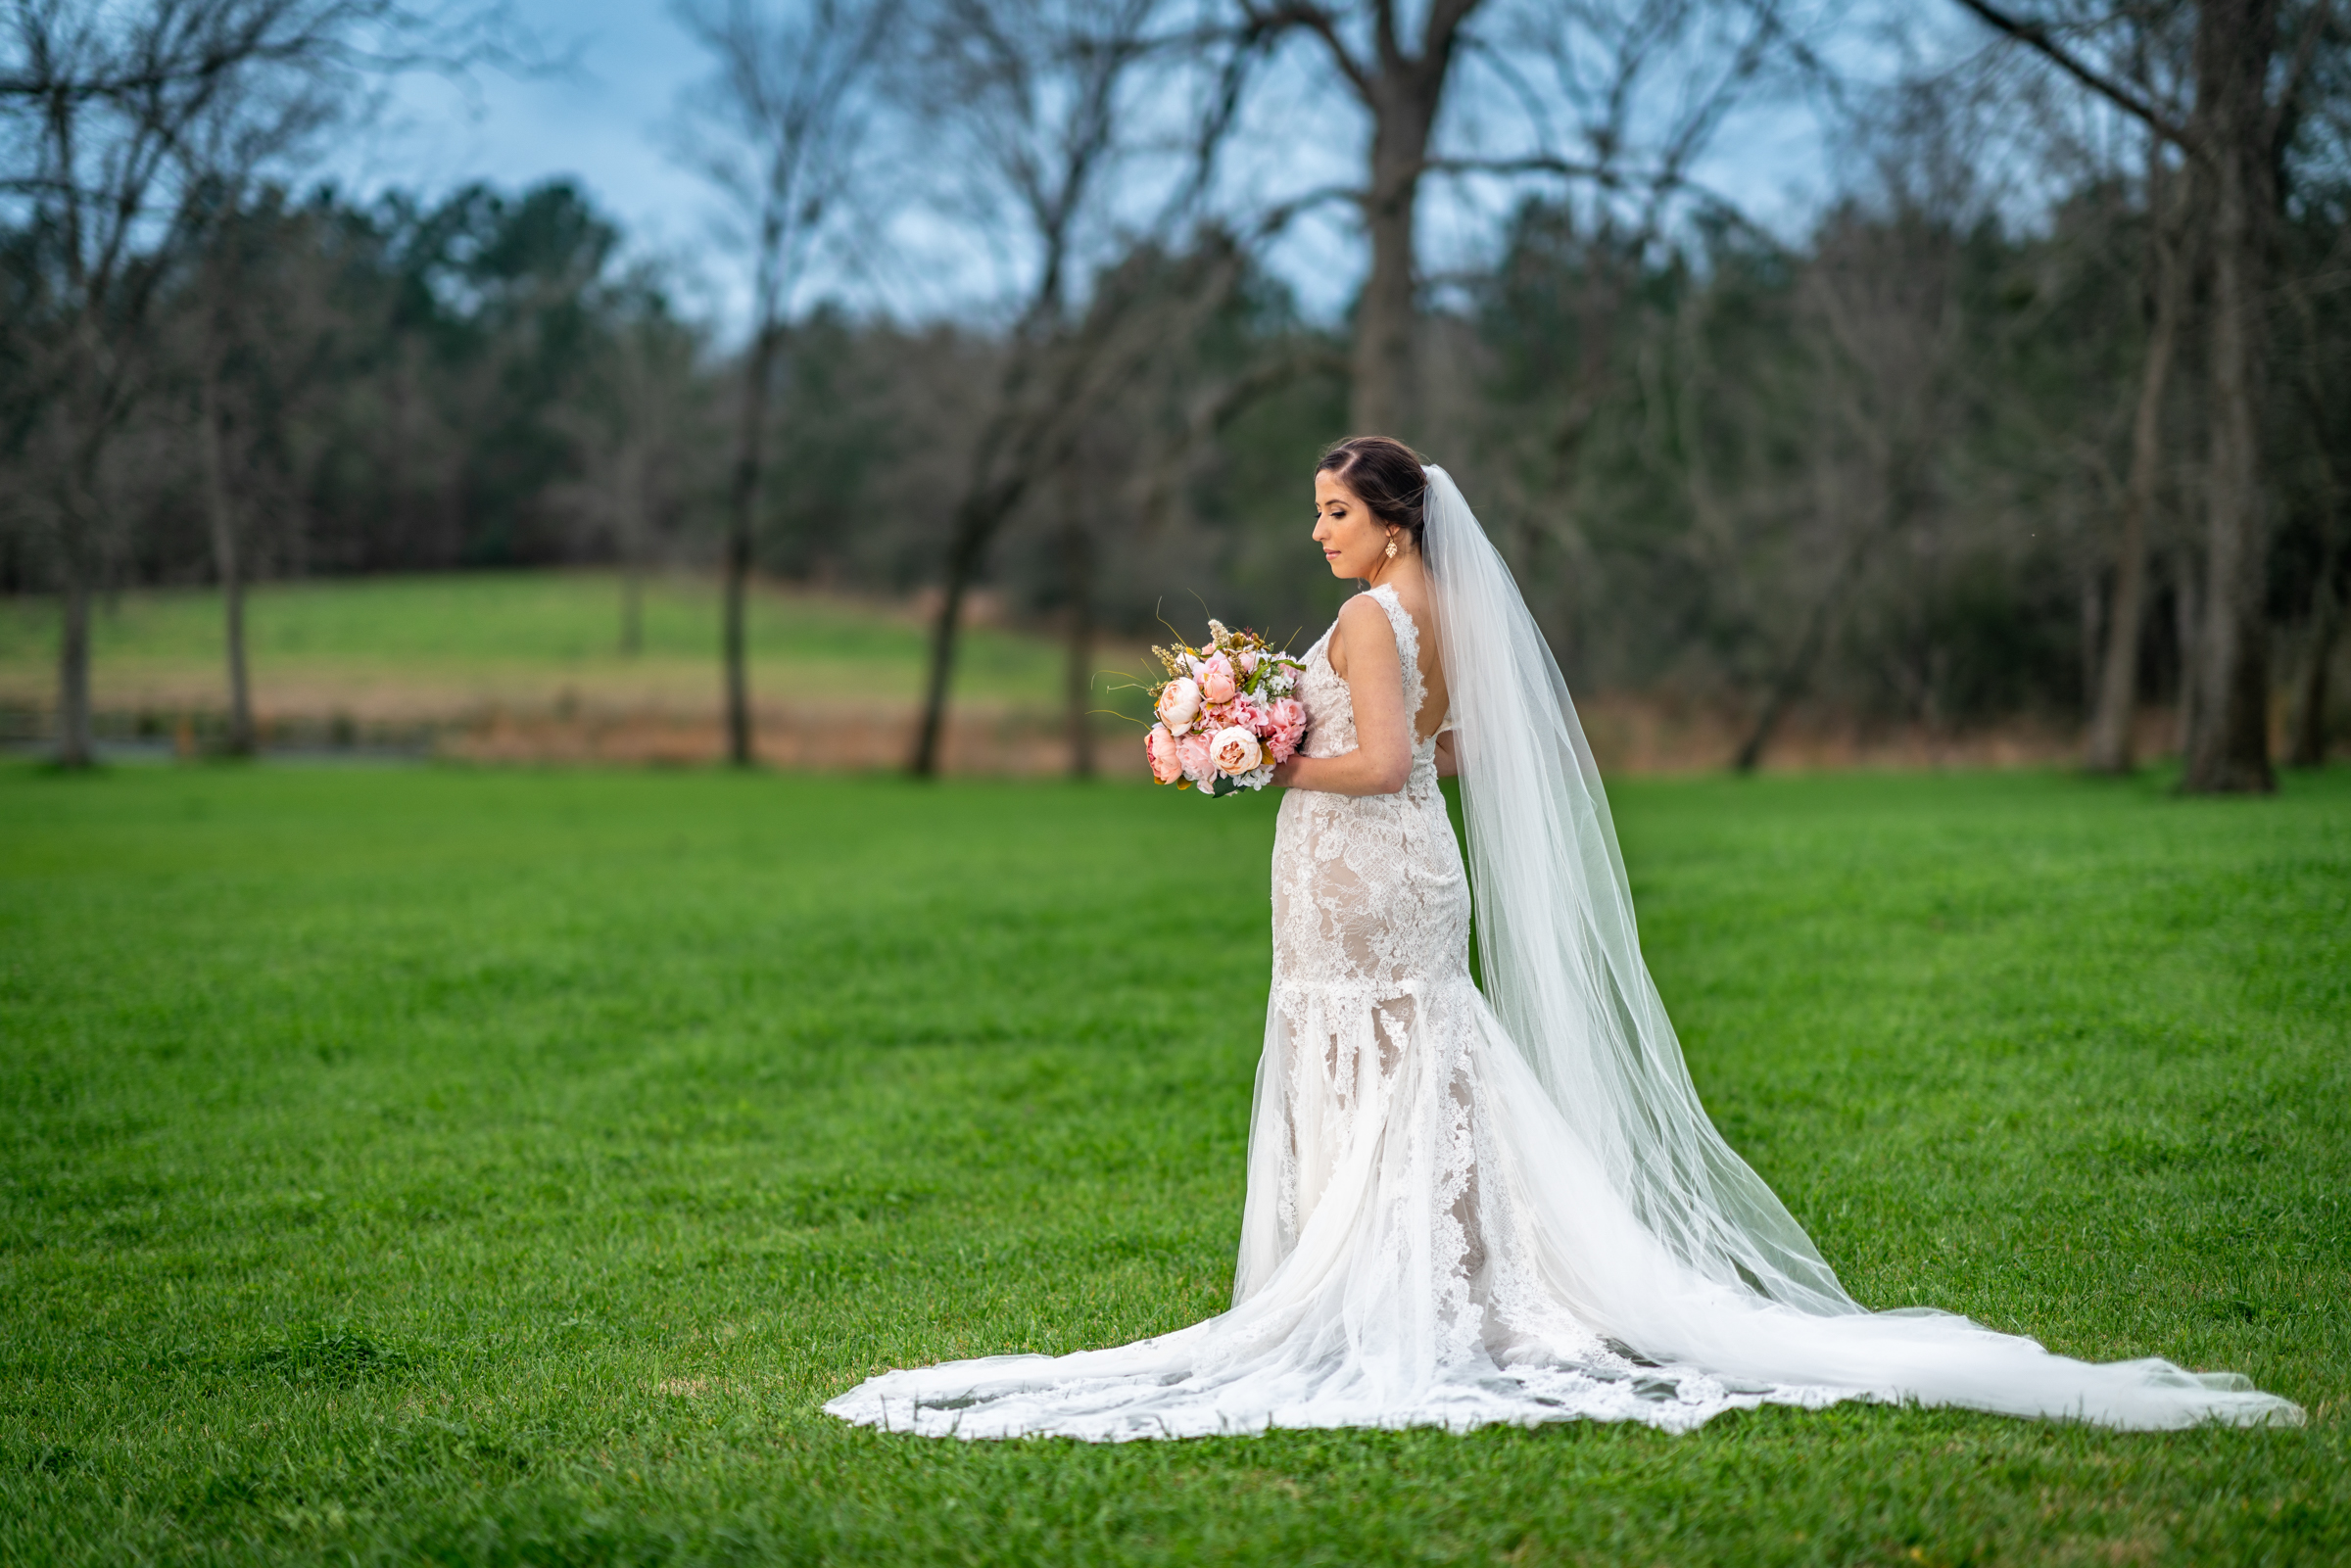 Bride-wedding-photographers.jpg